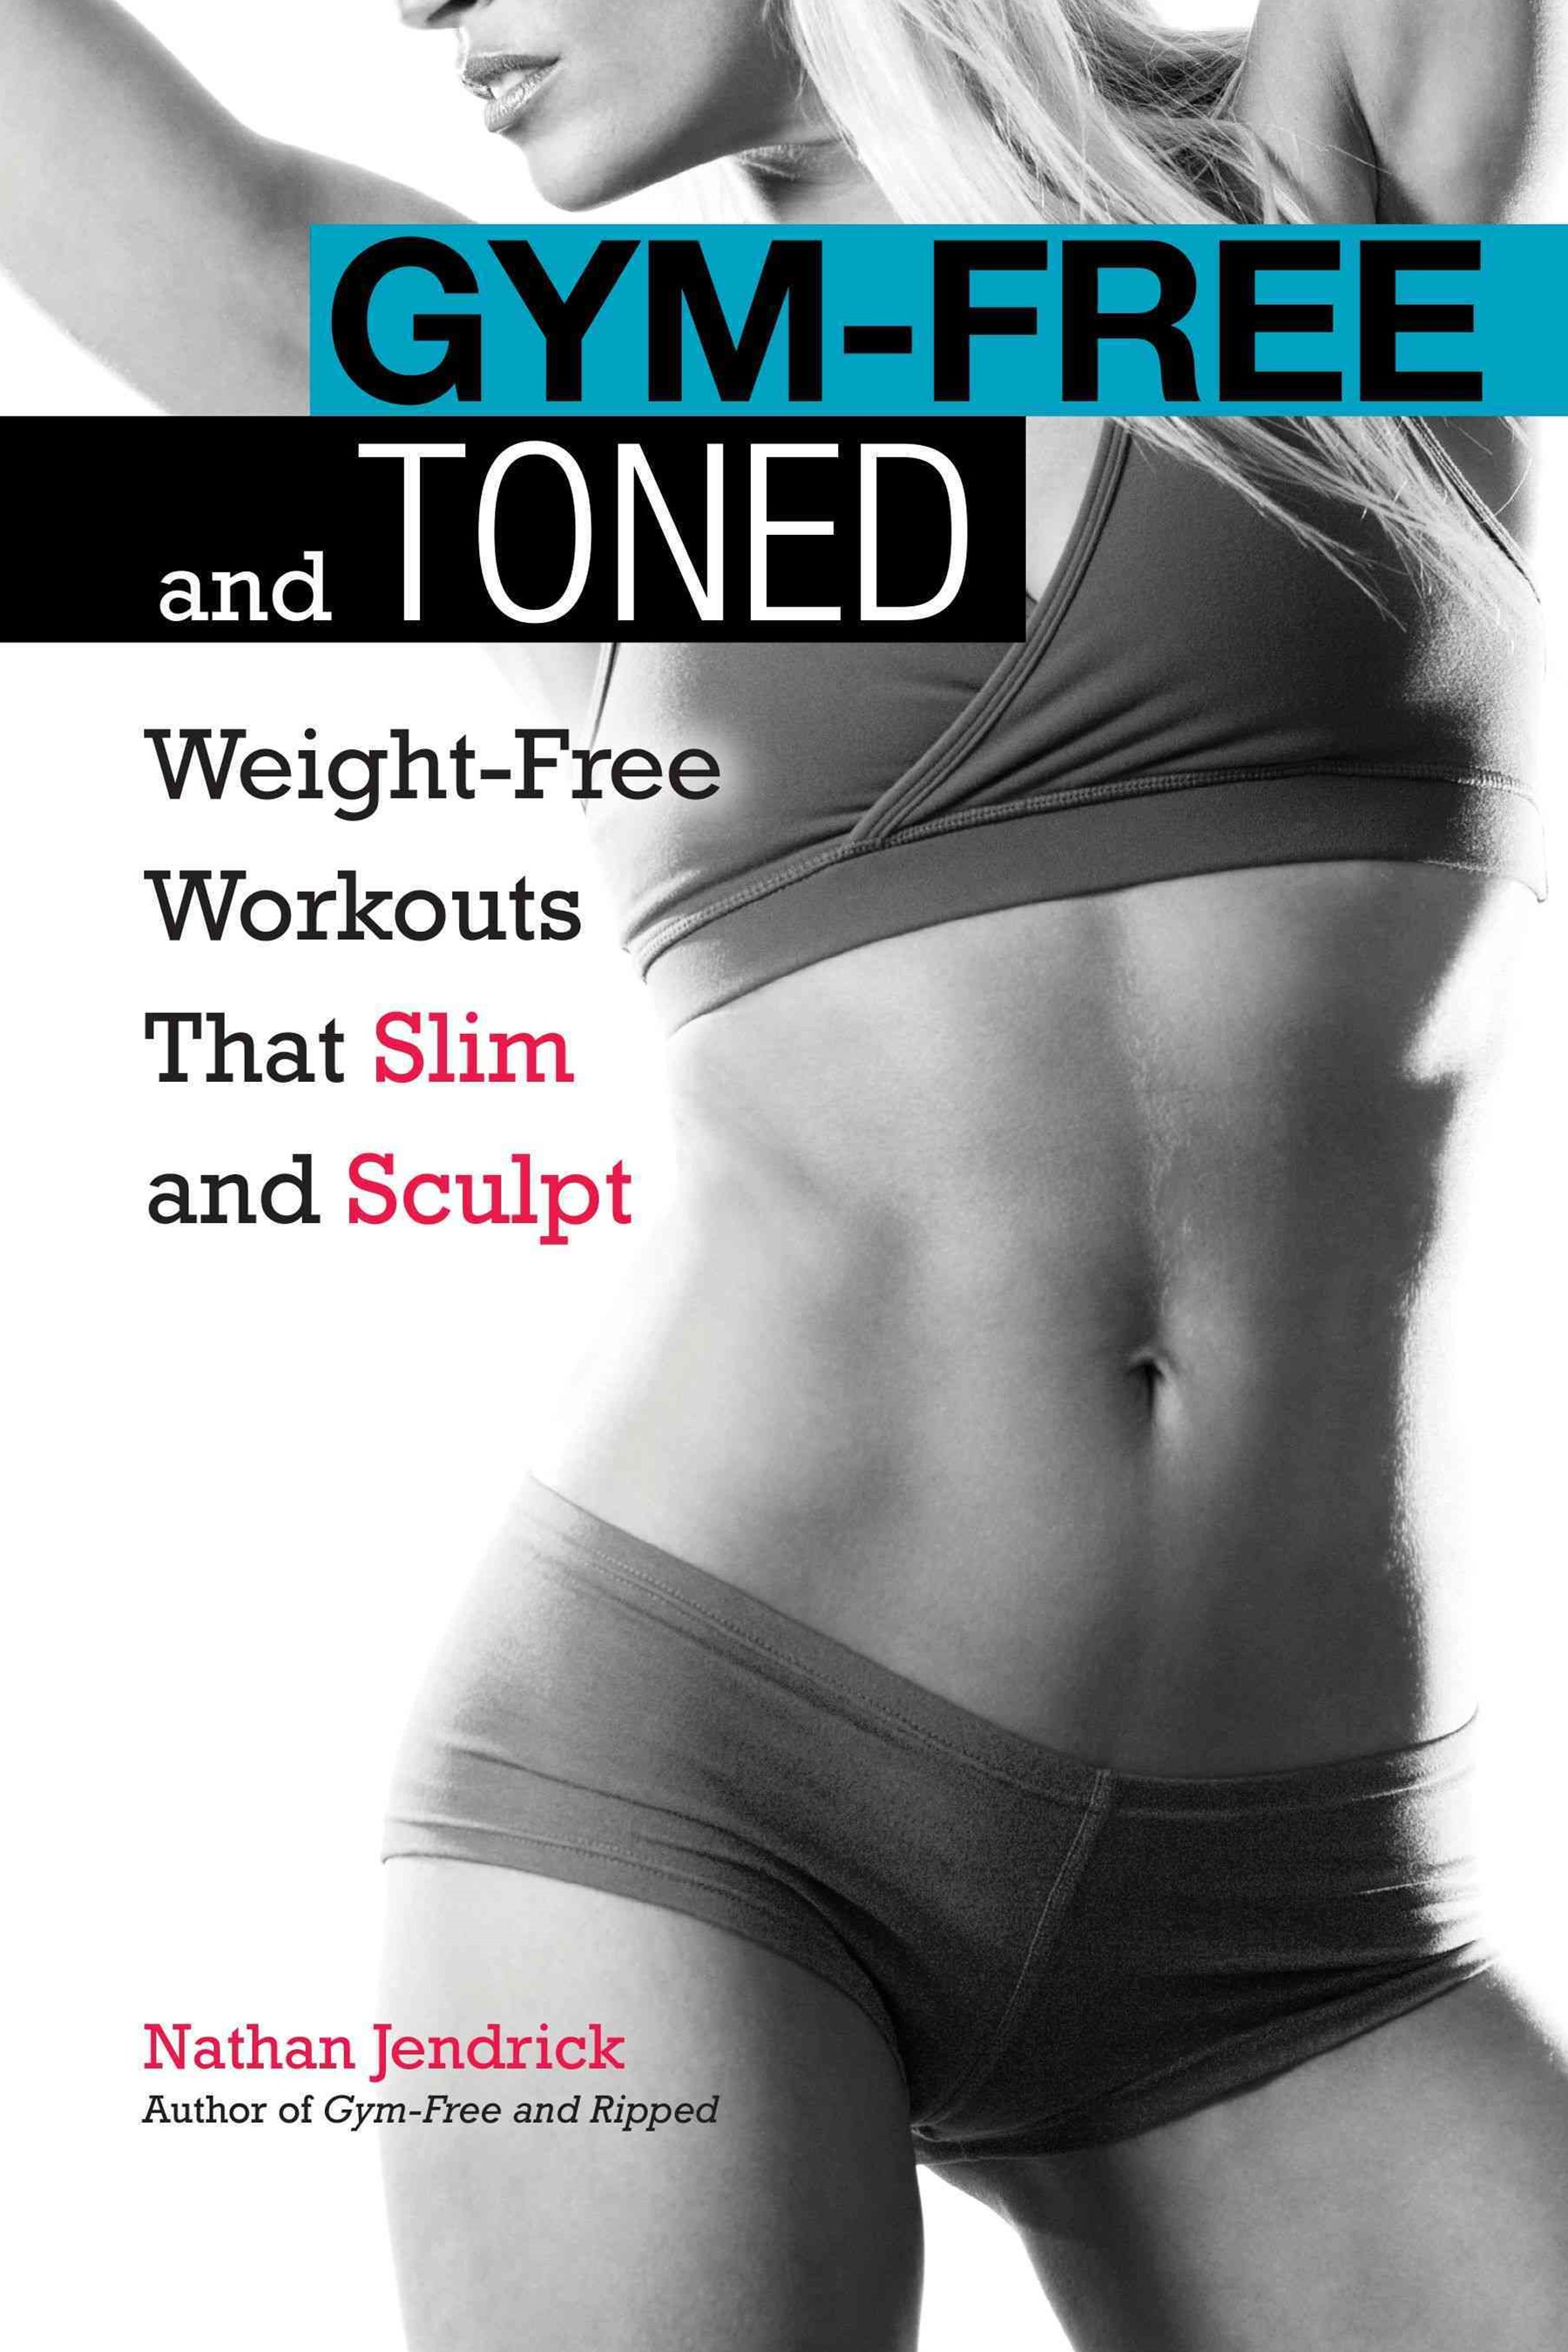 Gym-Free and Toned: Weight-Free Workouts That Slim and Sculpt